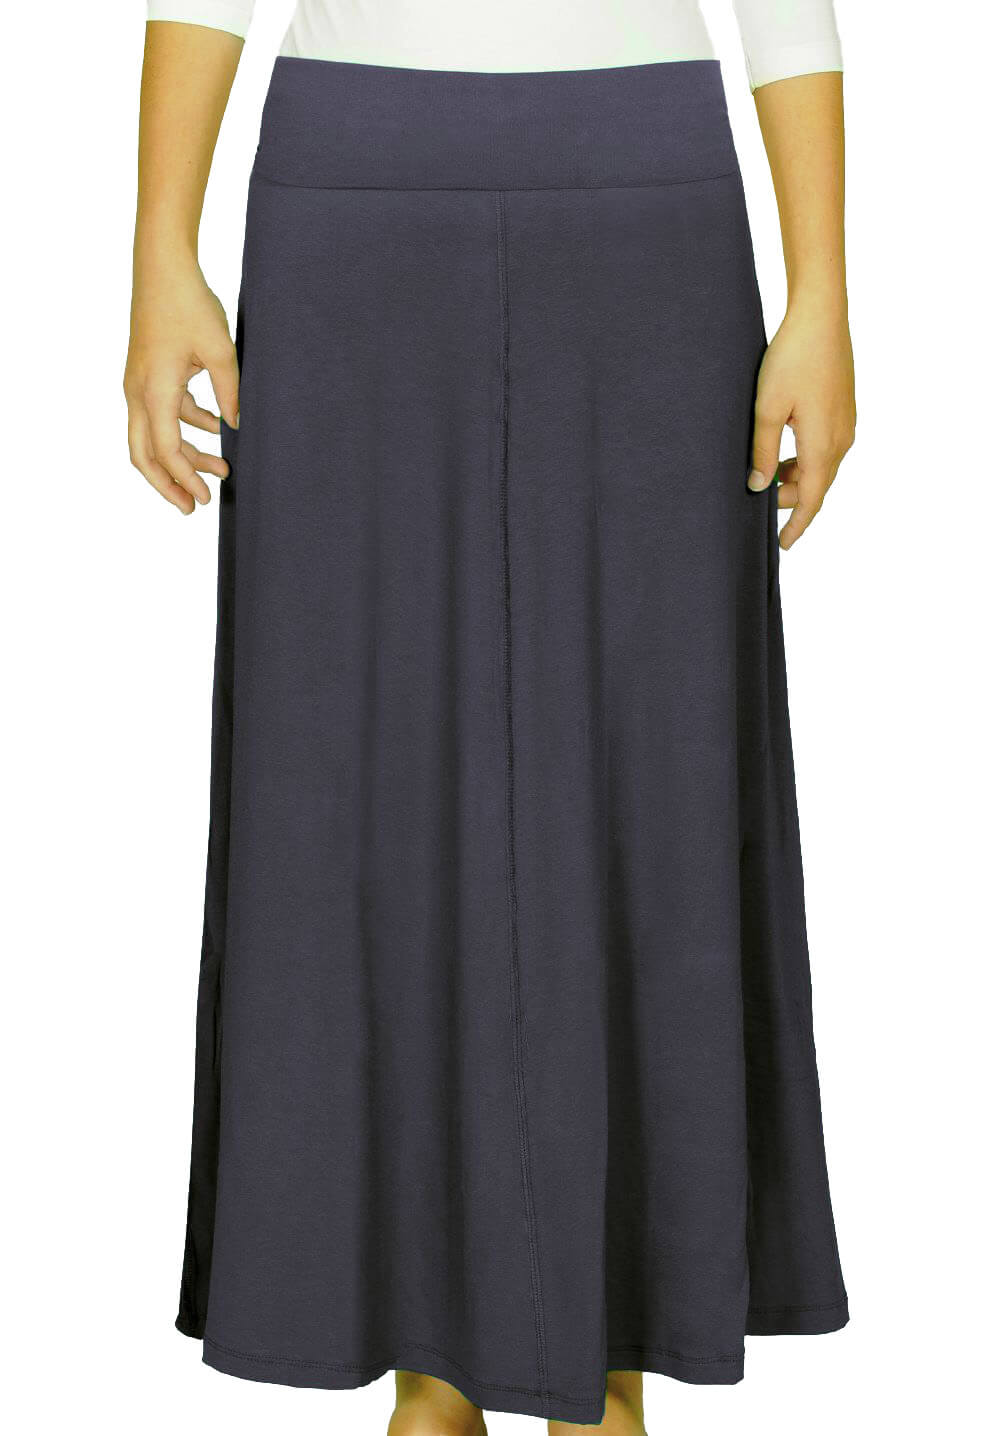 6268e5a77 Modest Skirts for Women - Long and Knee Length Skirts